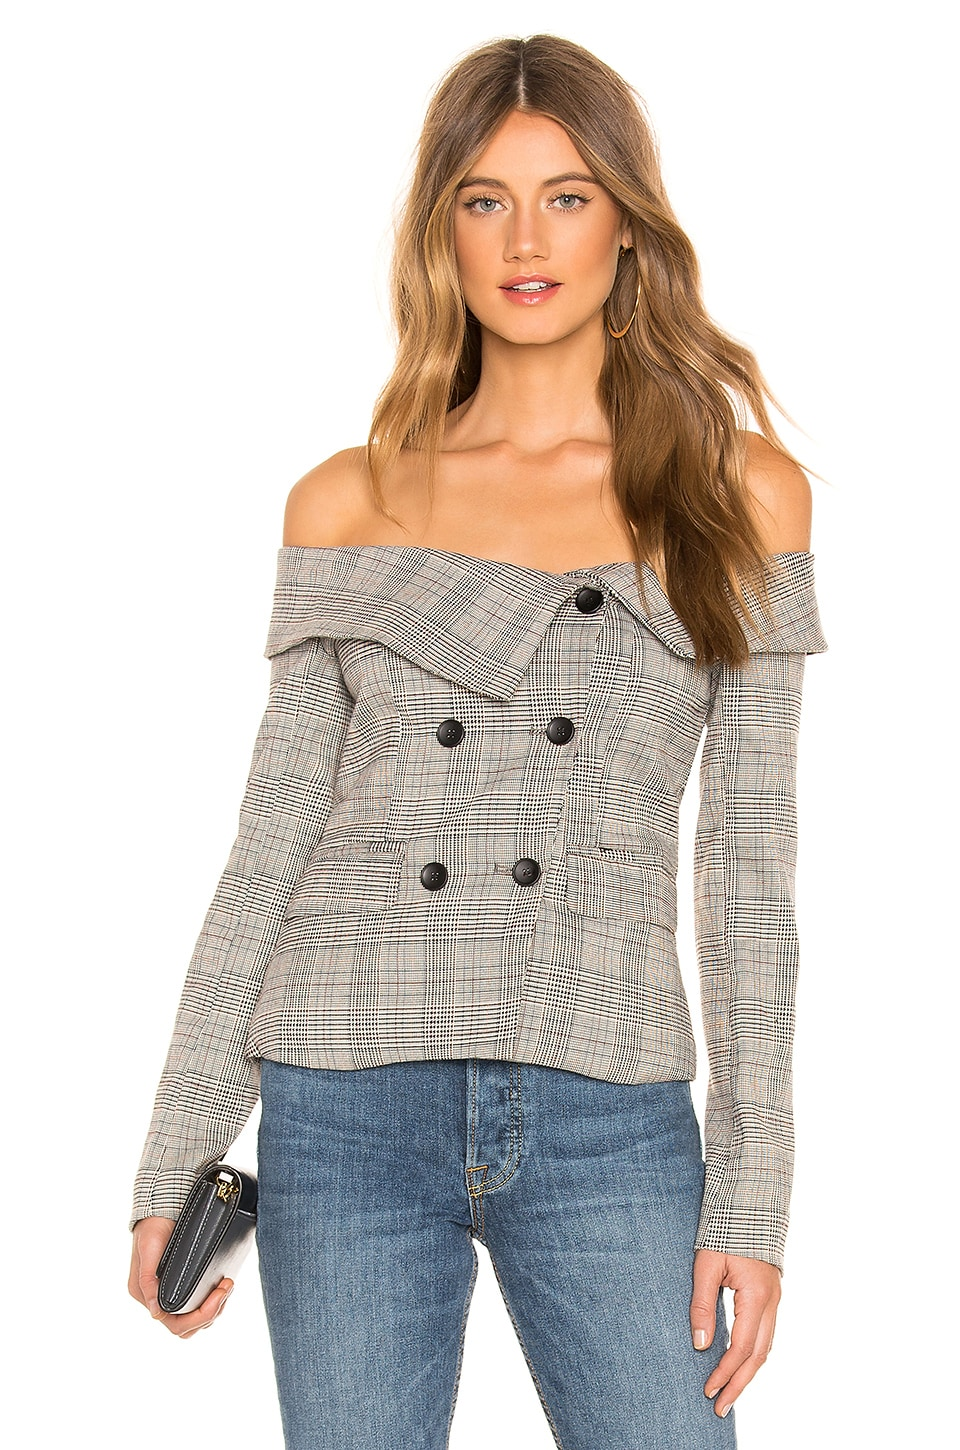 Arlene Blazer Top in Grey